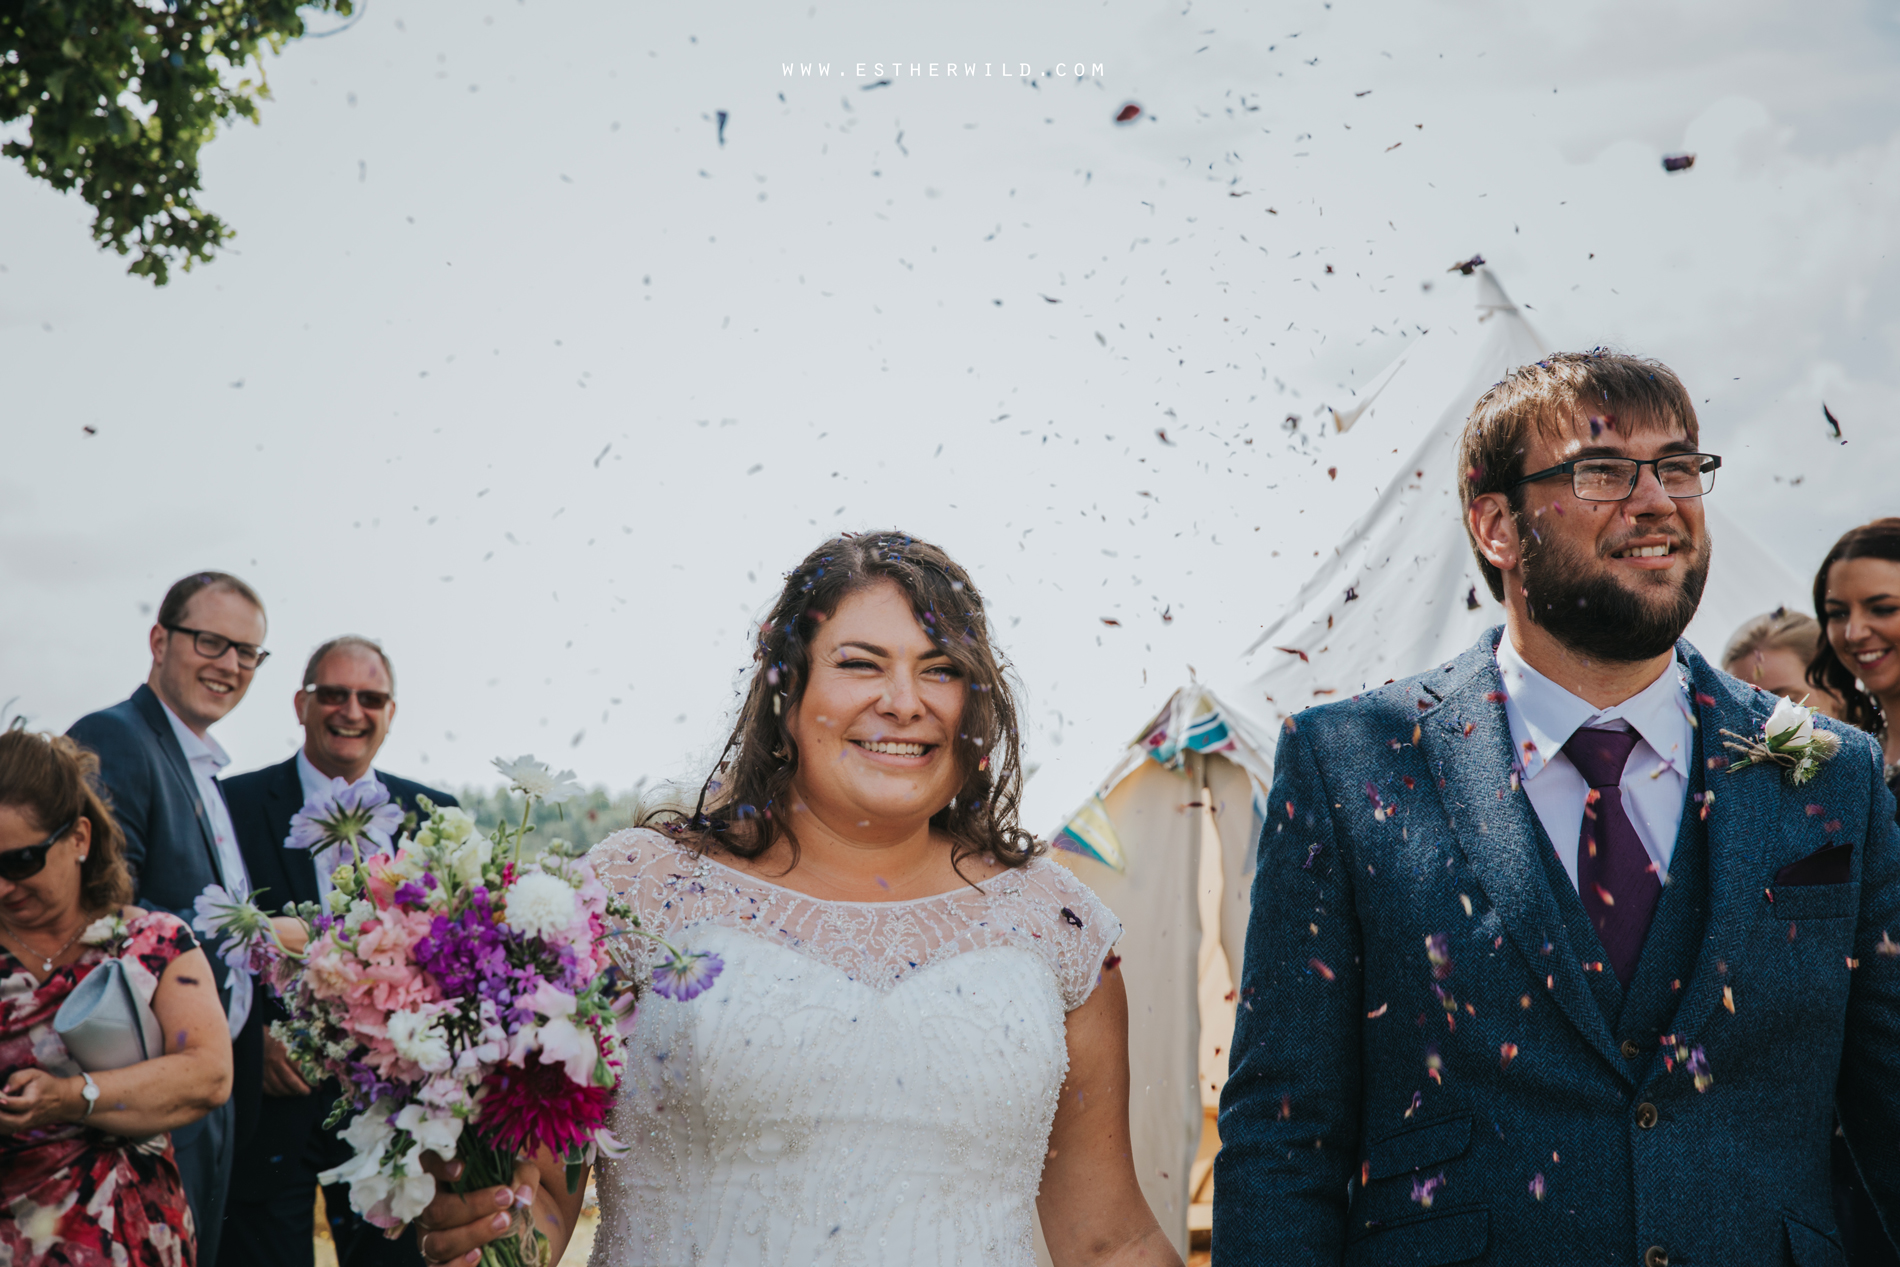 The_Red_Barn_Wedding_Kings_Lynn_Norfolk_IMG_1047.jpg